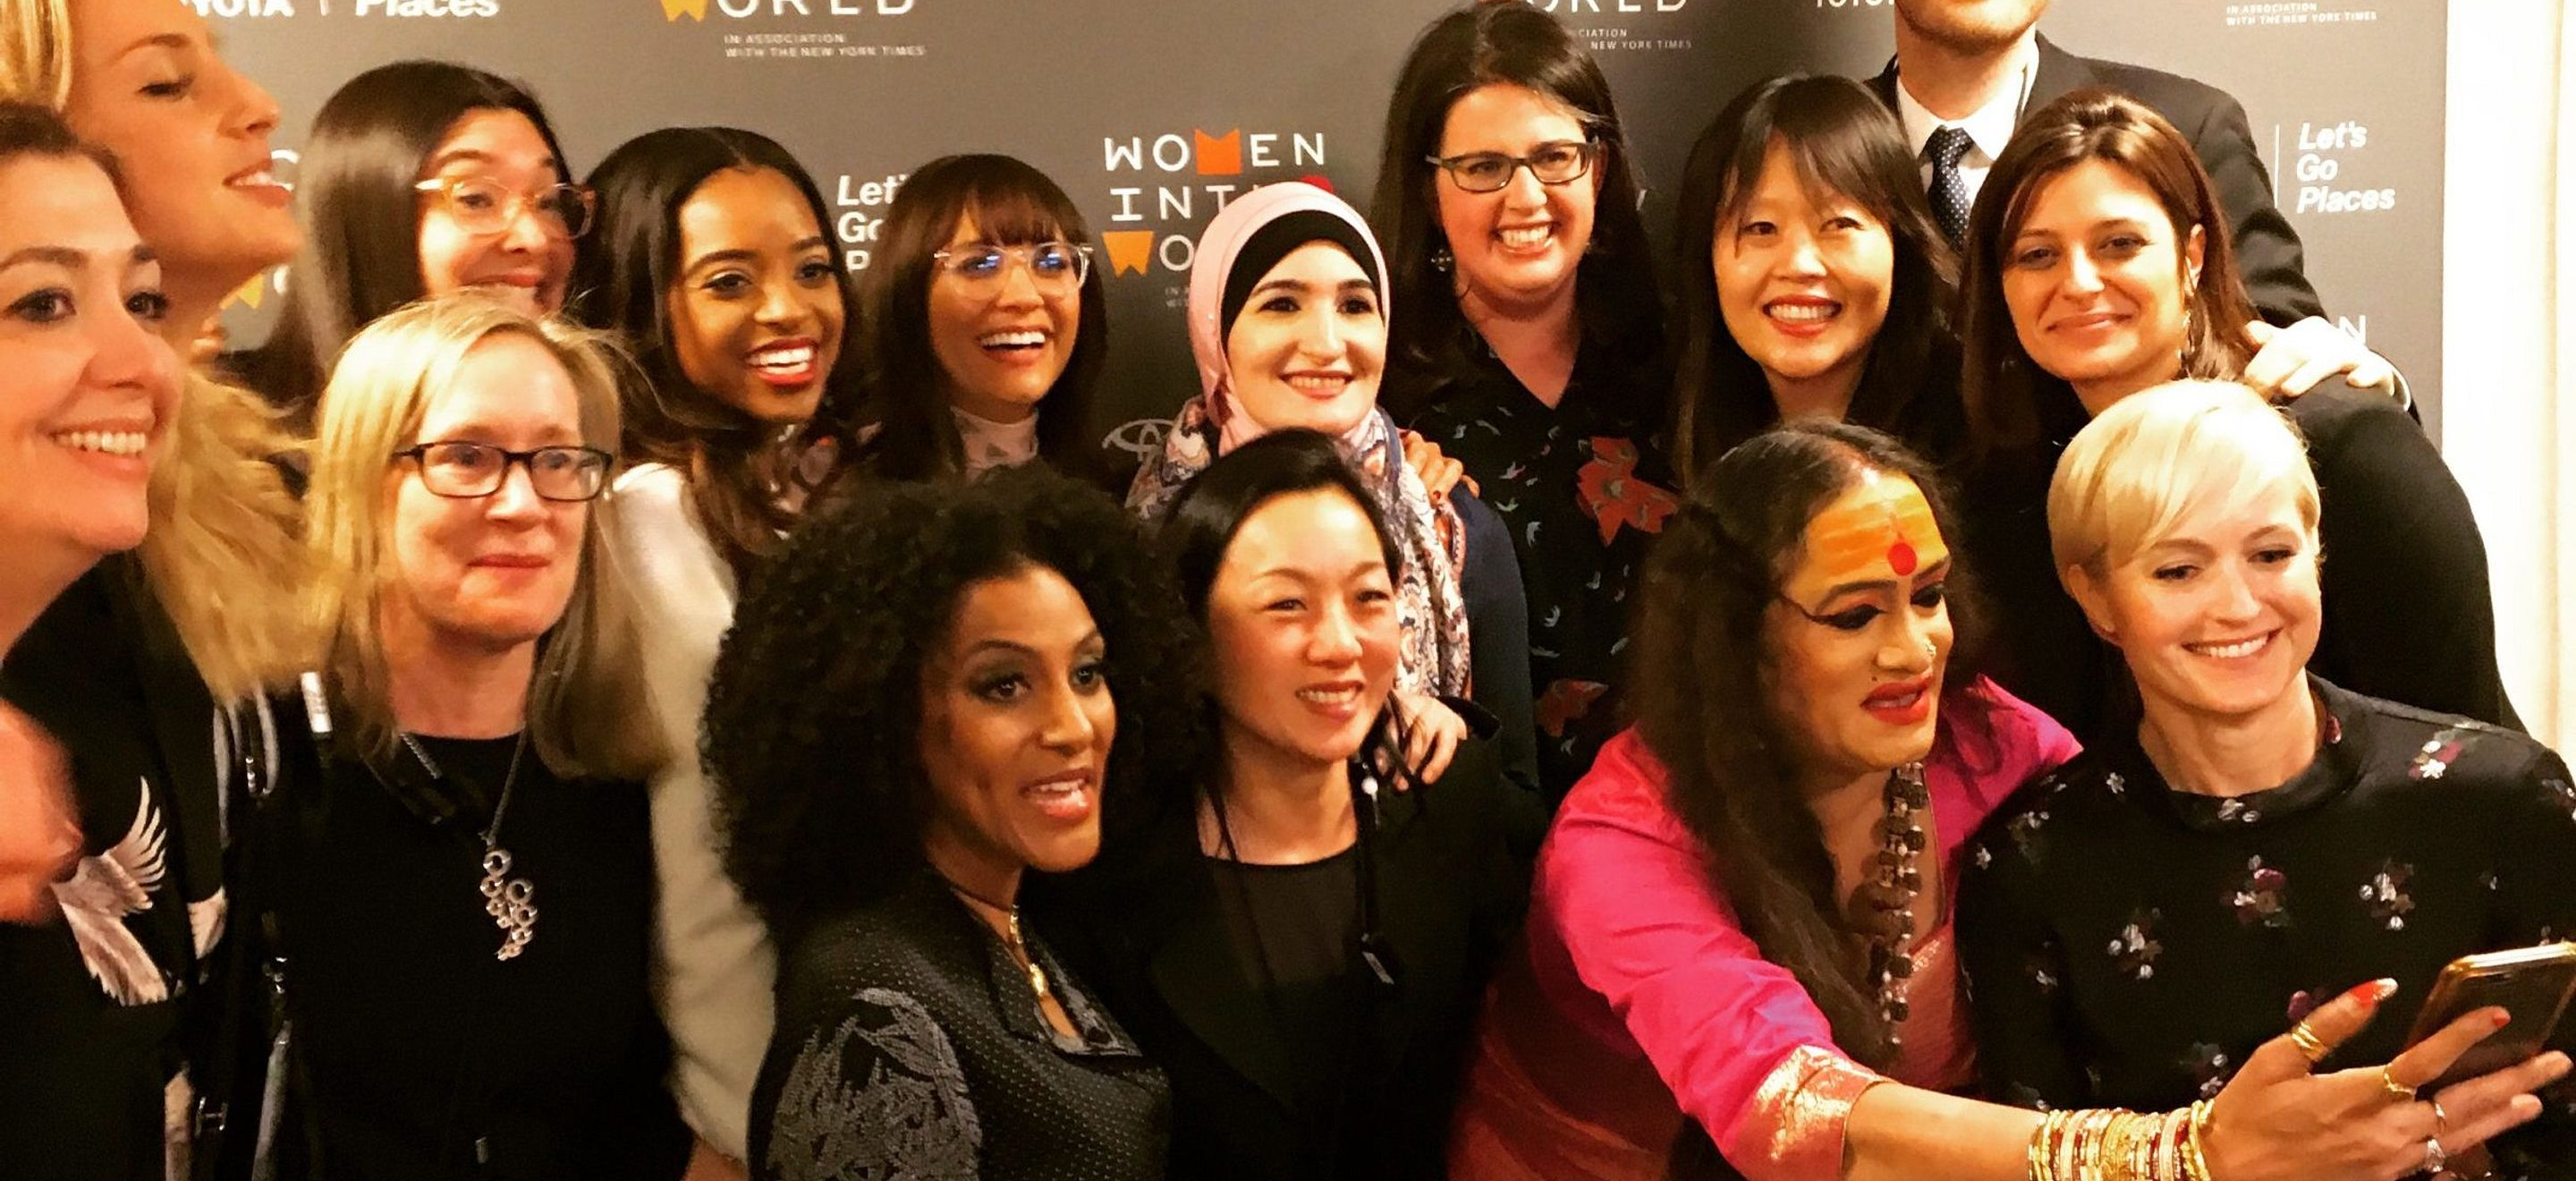 A group of 14 women (including IRAP Executive Director Becca Heller) and 1 man huddle together for a selfie in front of a Women in the World-branded popup banner.